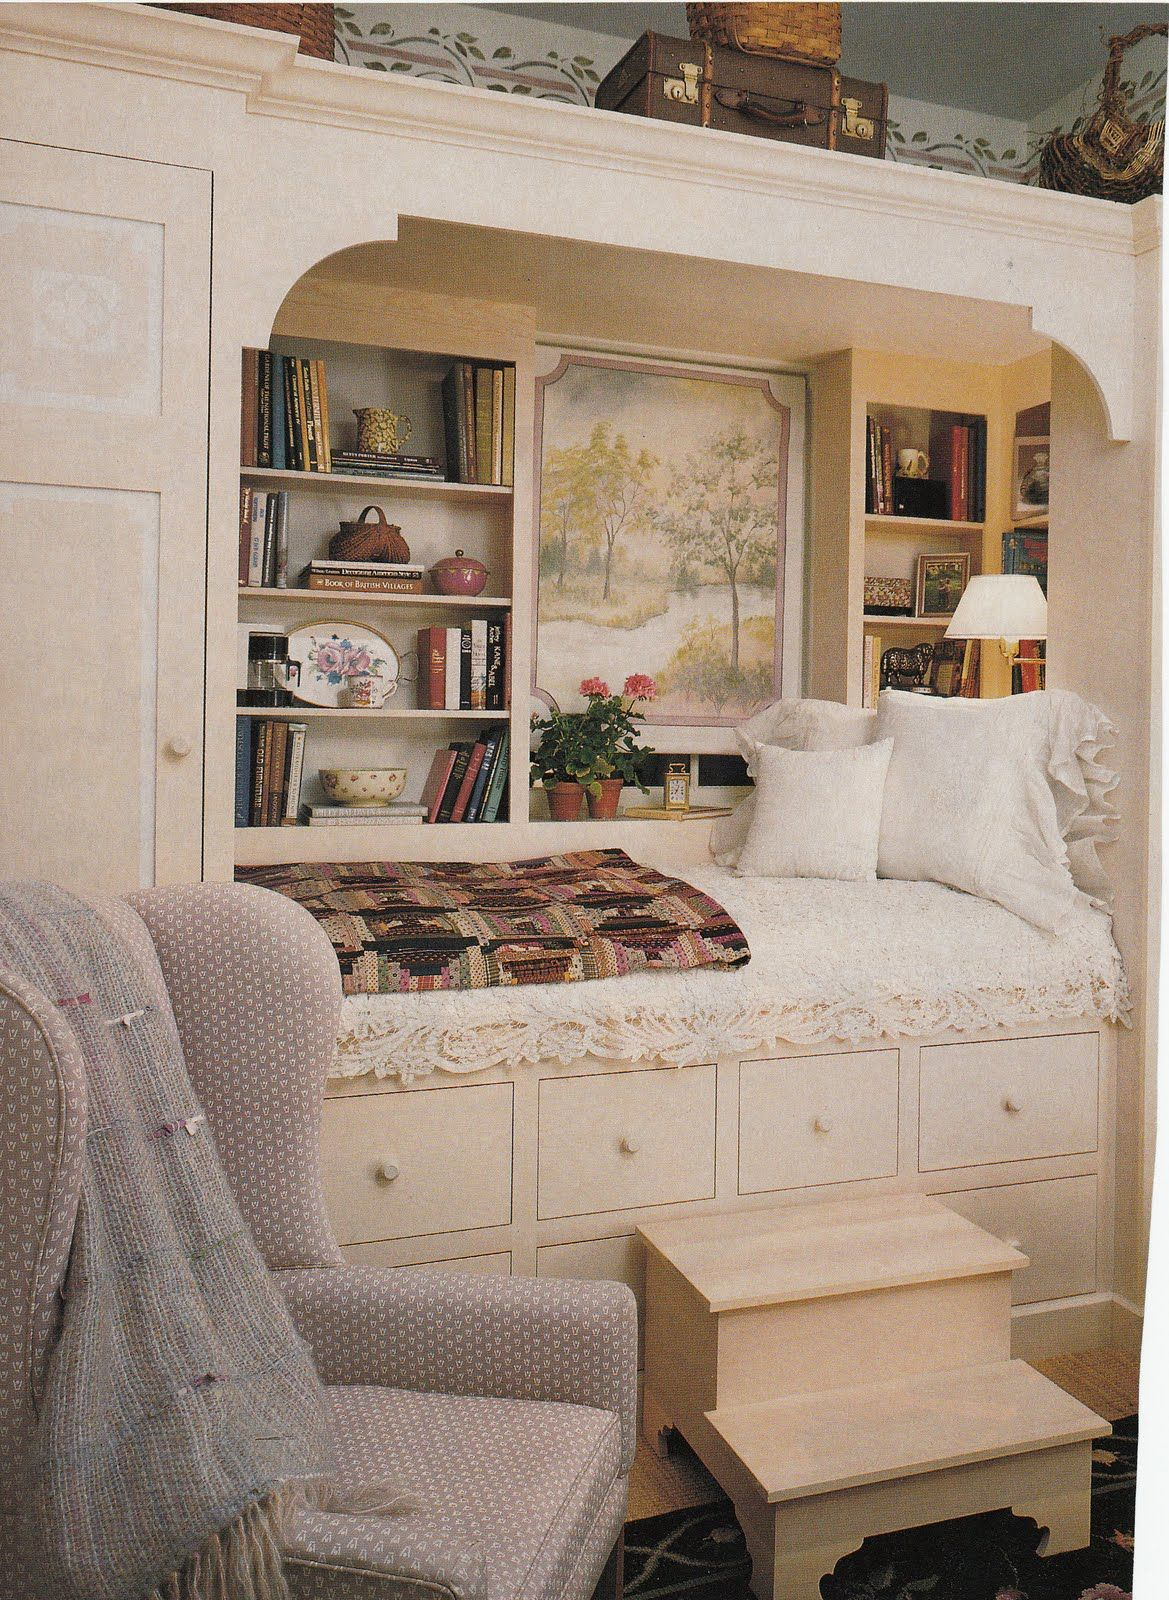 built in bed hydrangea hill cottage sleeping quarters. Black Bedroom Furniture Sets. Home Design Ideas